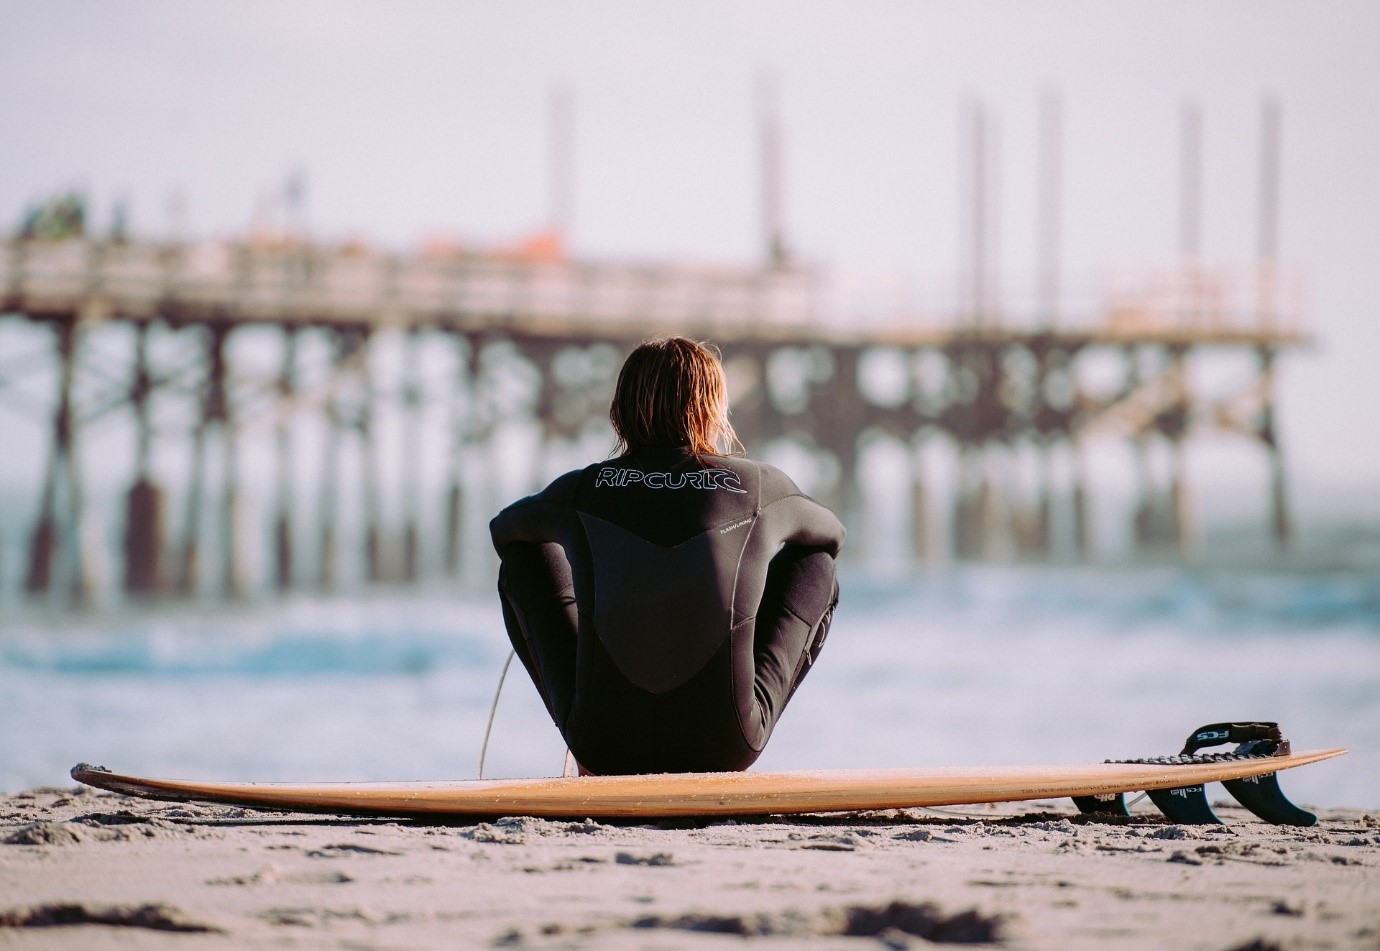 Men in a black wetsuit seated outside beach with a shortboard surfboard